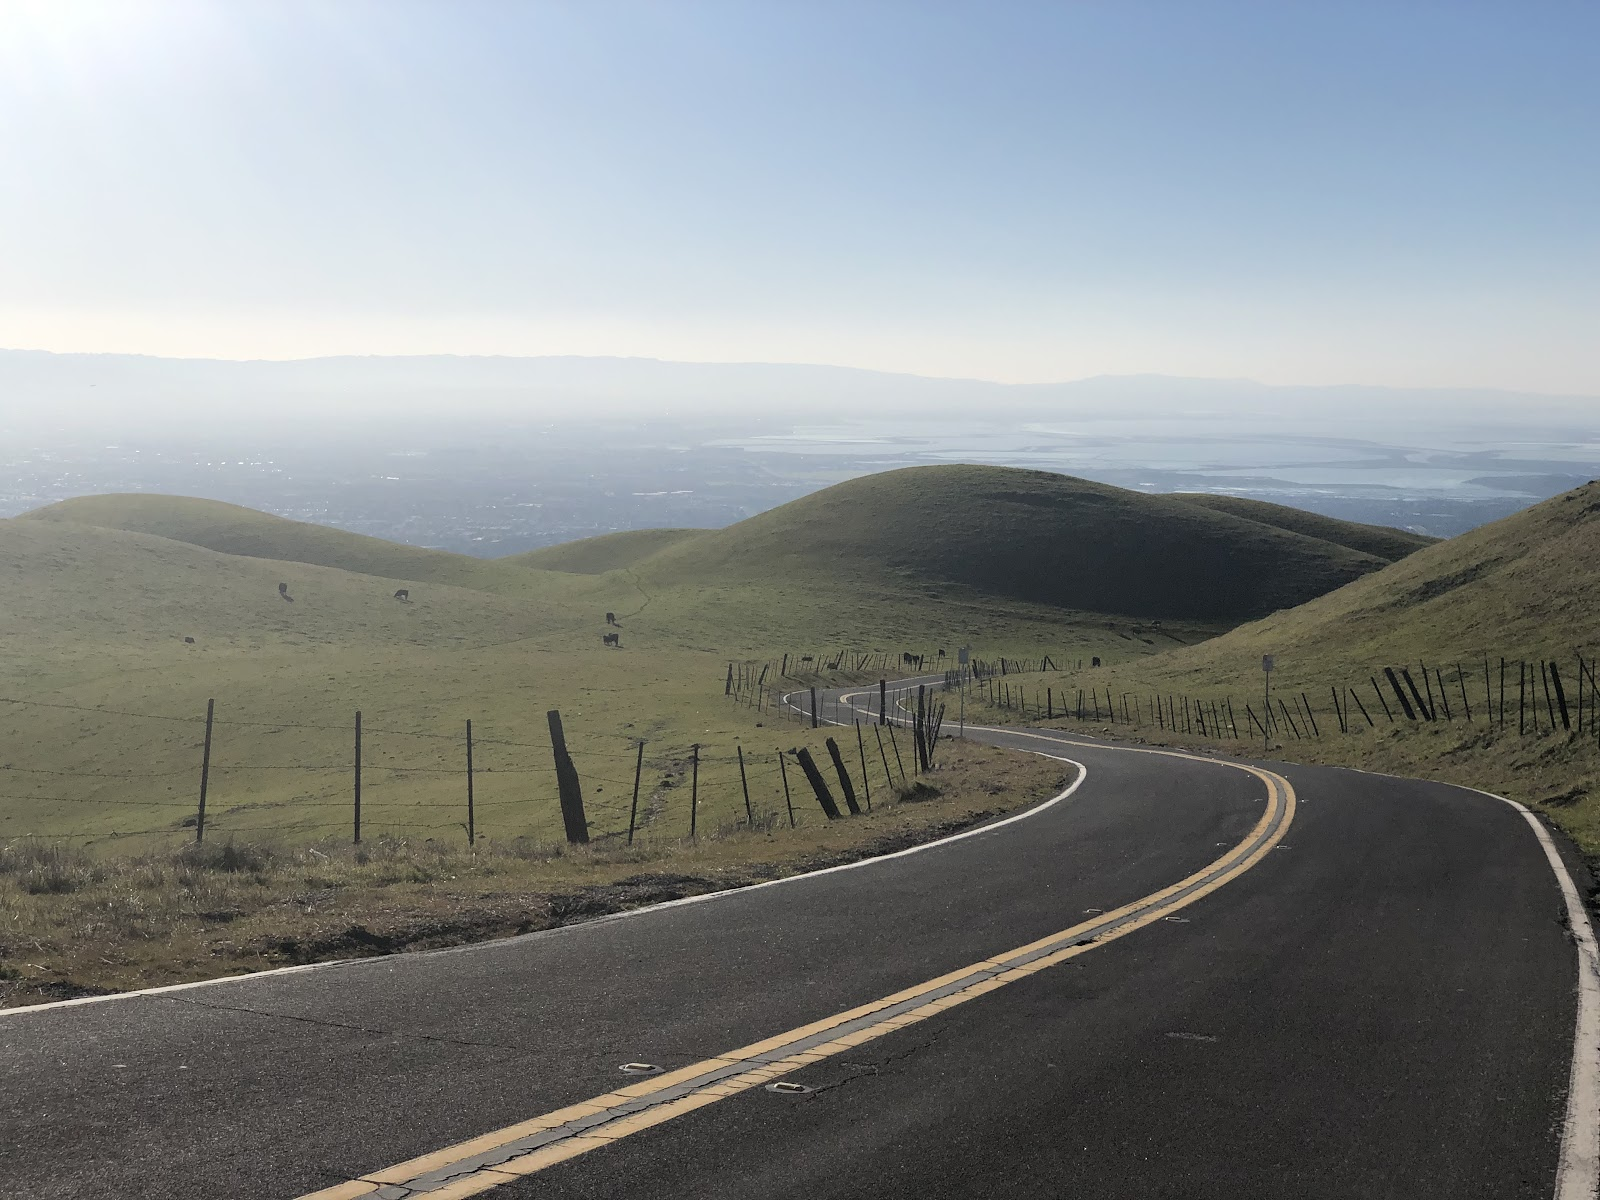 Climbing Sierra Road by bike - view west from the top - roadway and city below